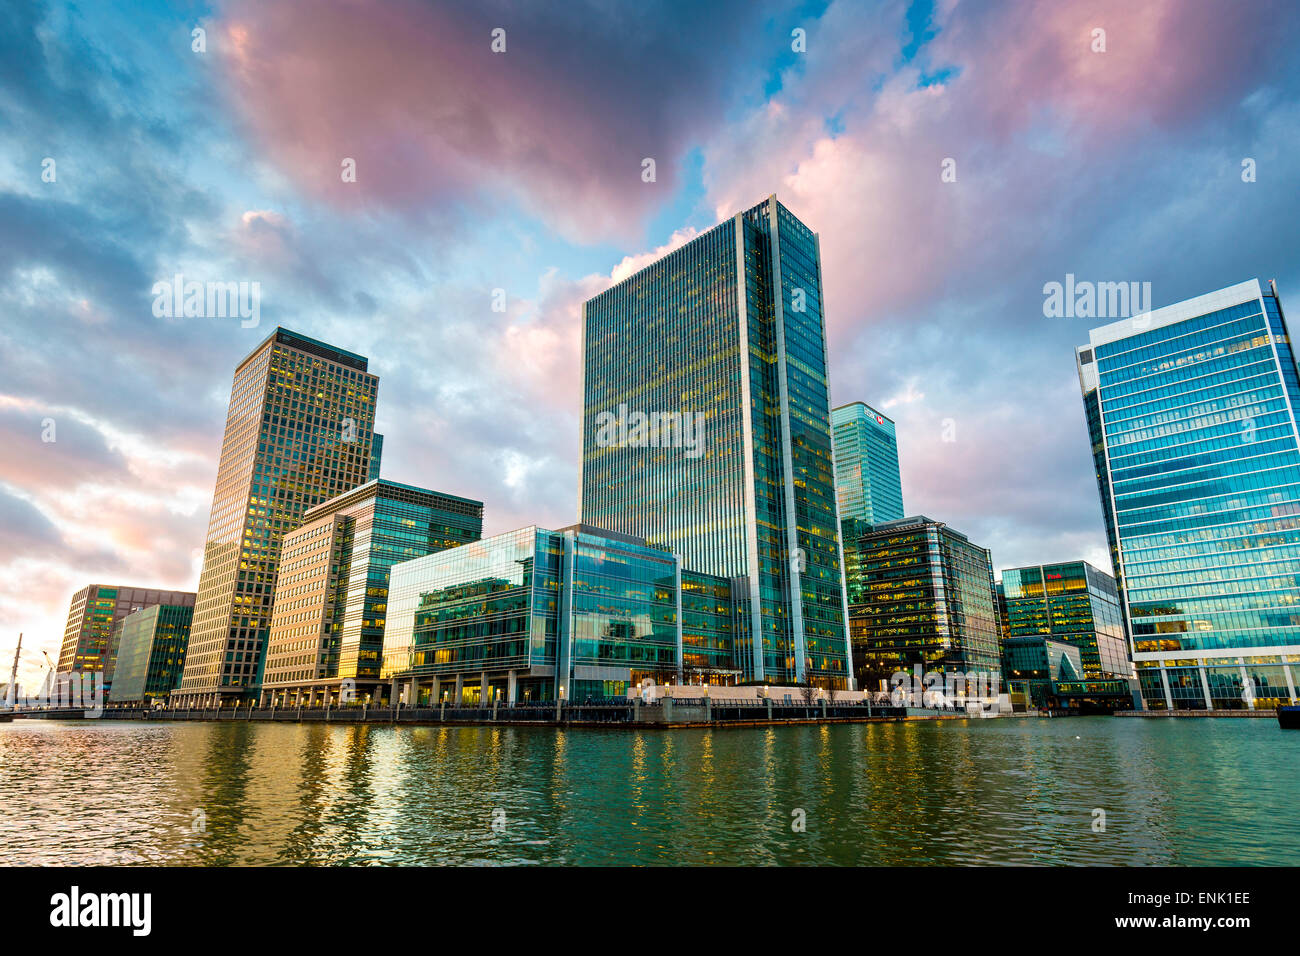 Canary Wharf, au crépuscule, Docklands, Londres, Angleterre, Royaume-Uni, Europe Photo Stock